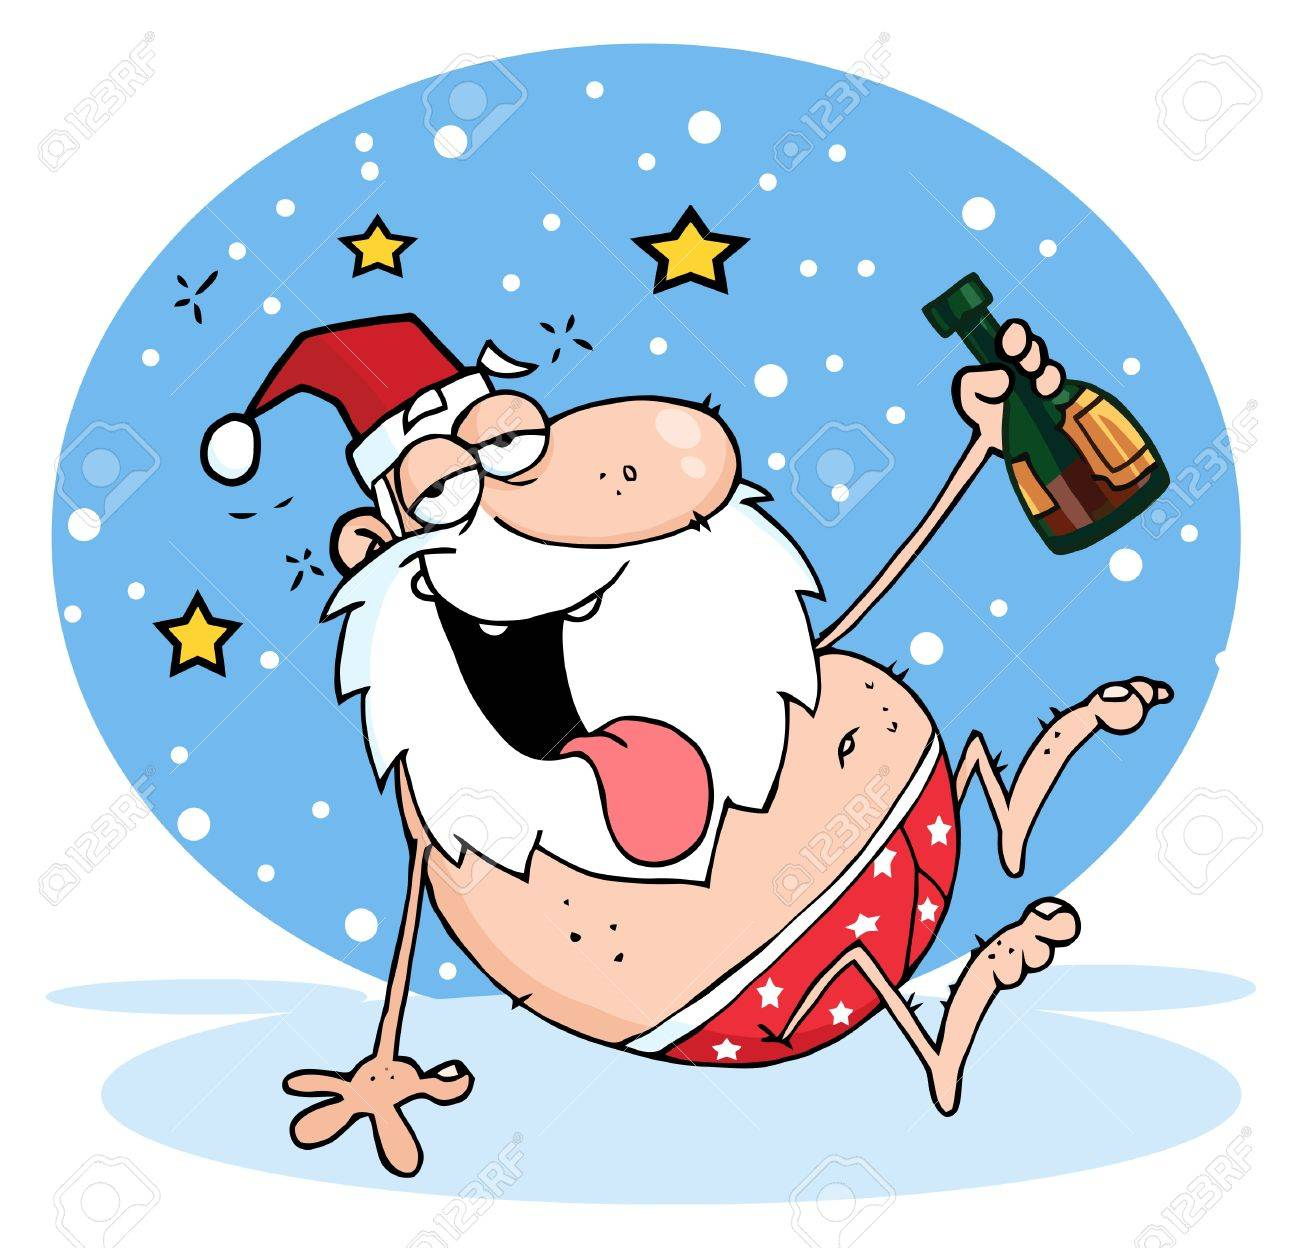 Drunk Santa Clause In The Snow Stock Vector - 8372627